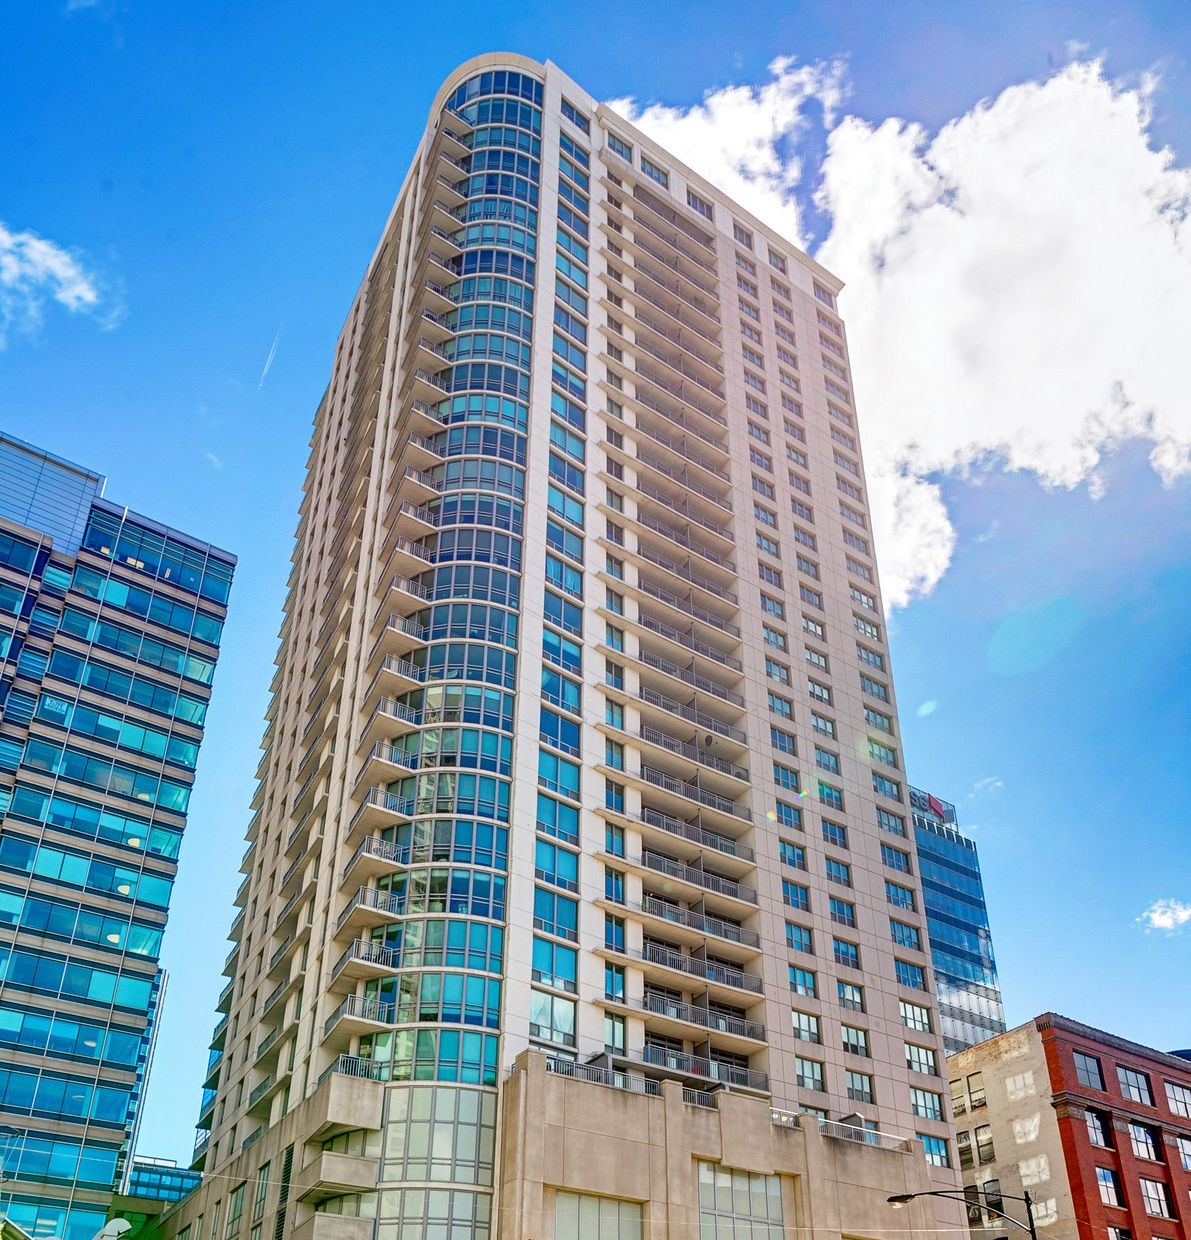 Single Family Home for Sale at West Loop Condo 125 S Jefferson Street #2504 Near West Side, Chicago, Illinois 60661 United States